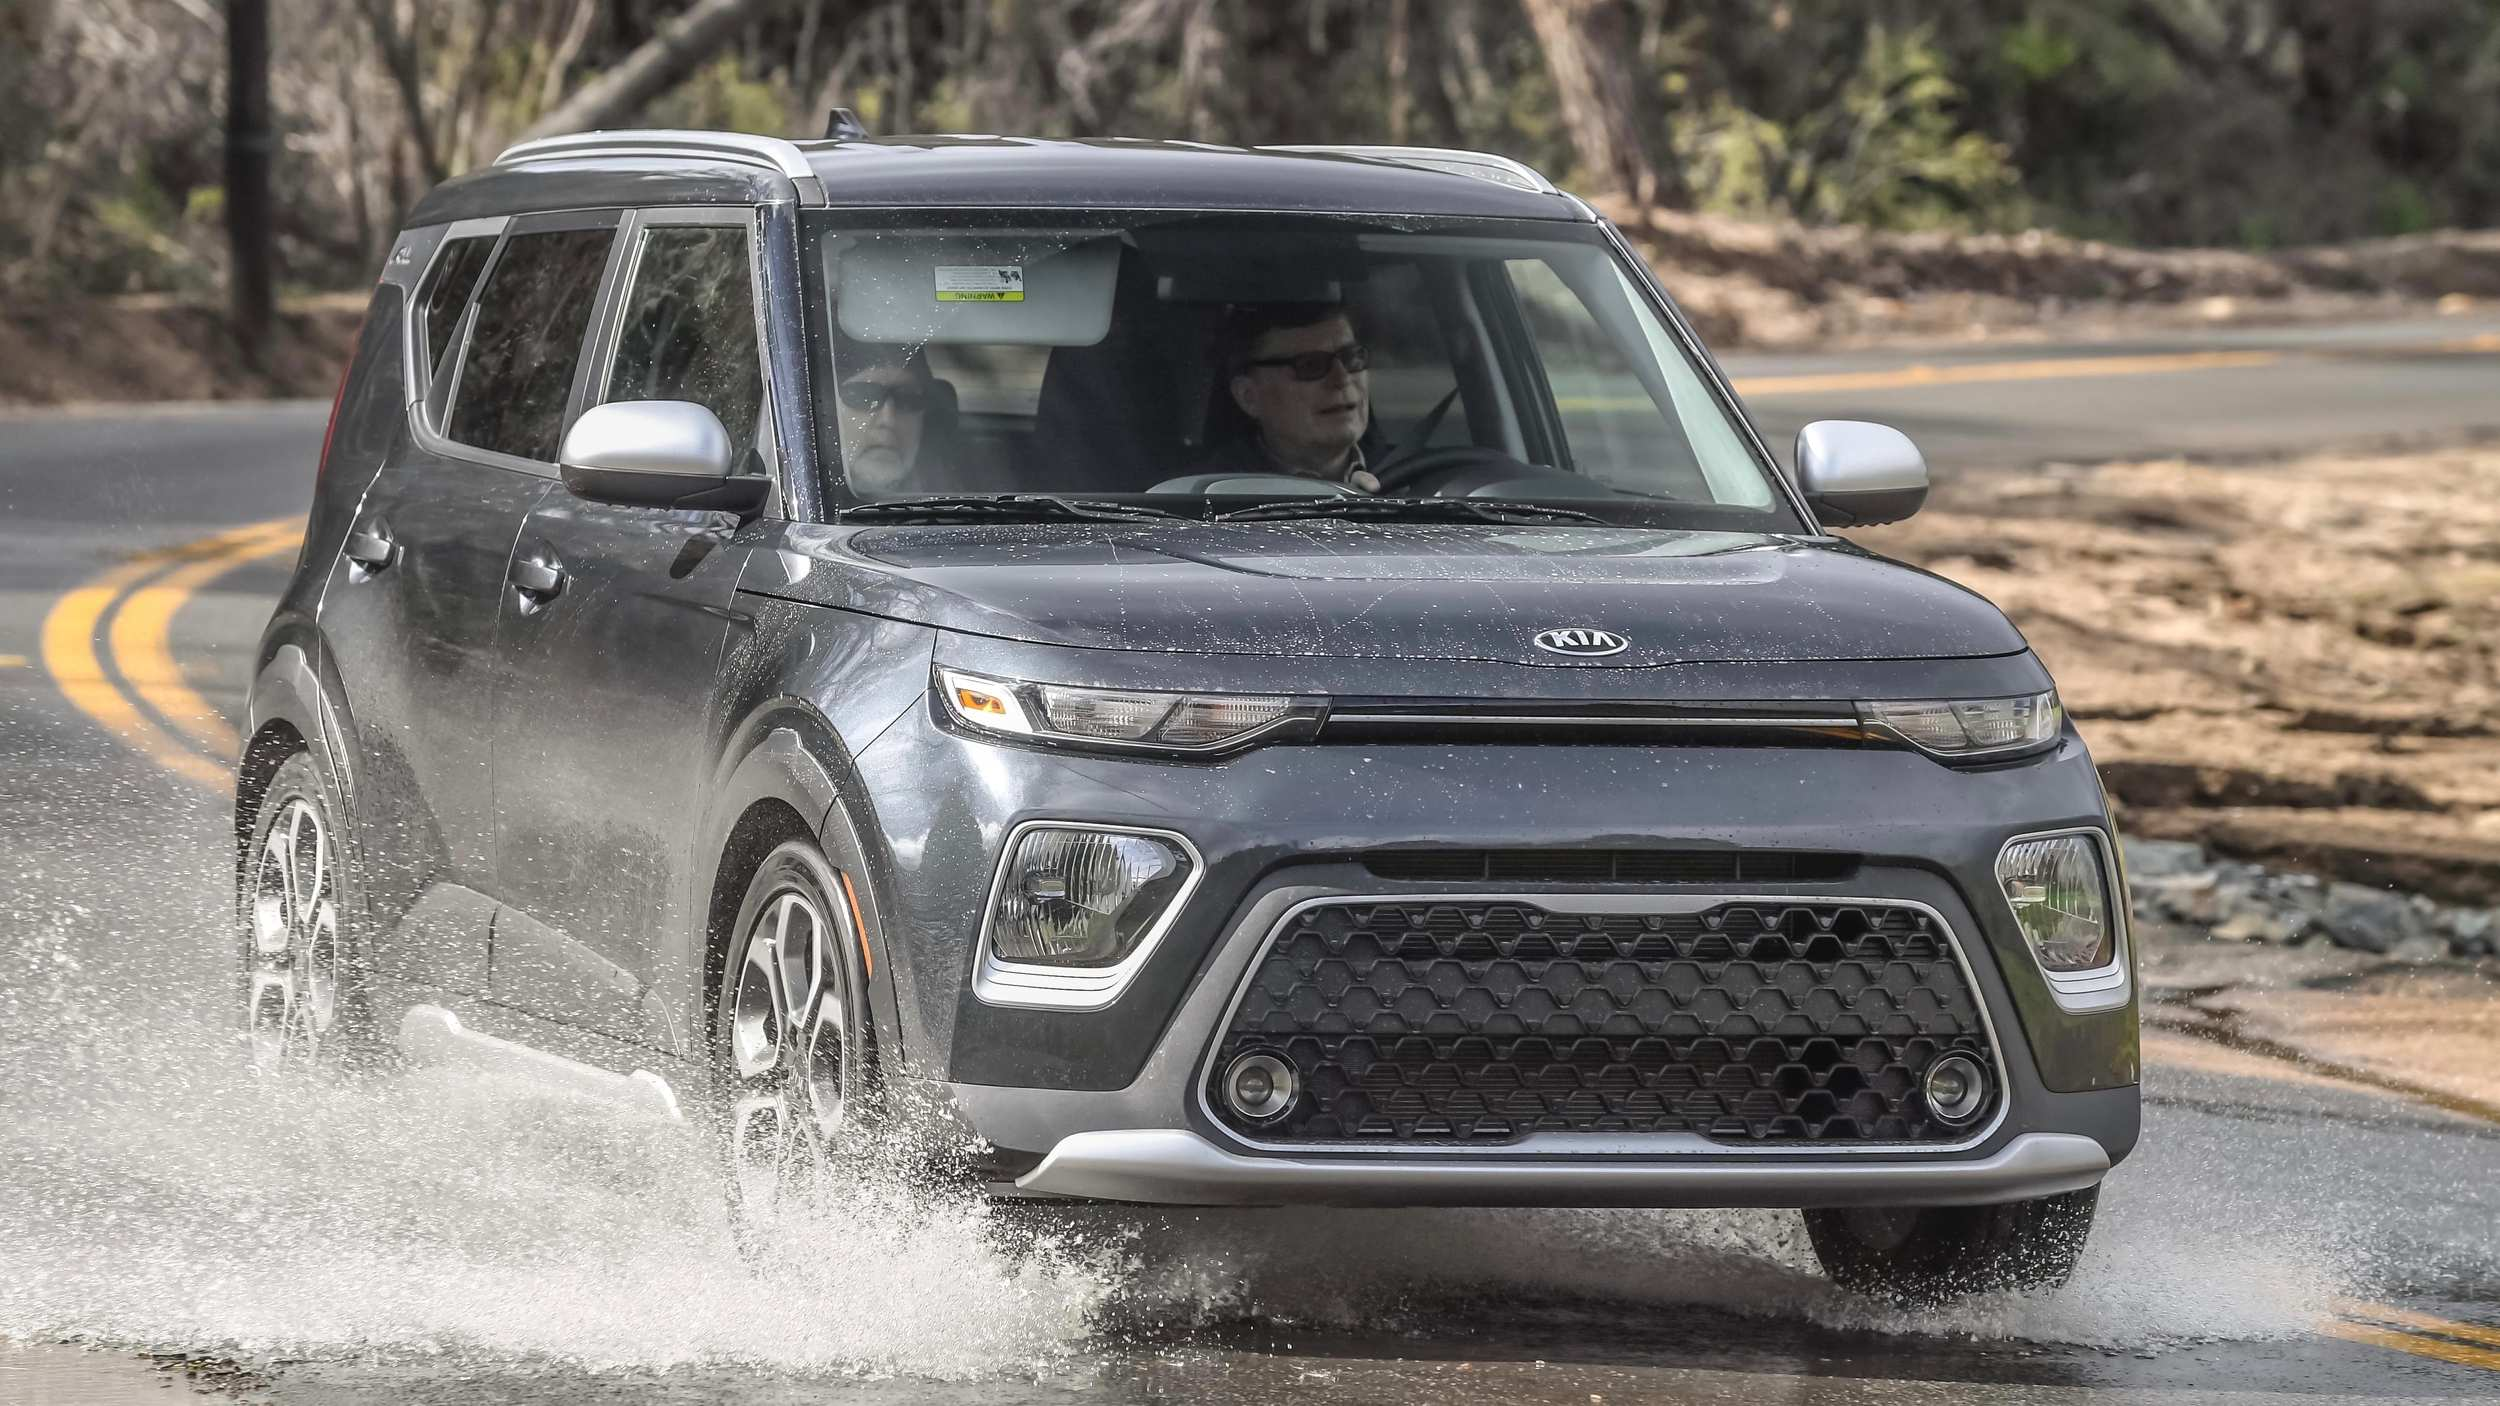 64 The 2020 Kia Soul Xline Reviews for 2020 Kia Soul Xline